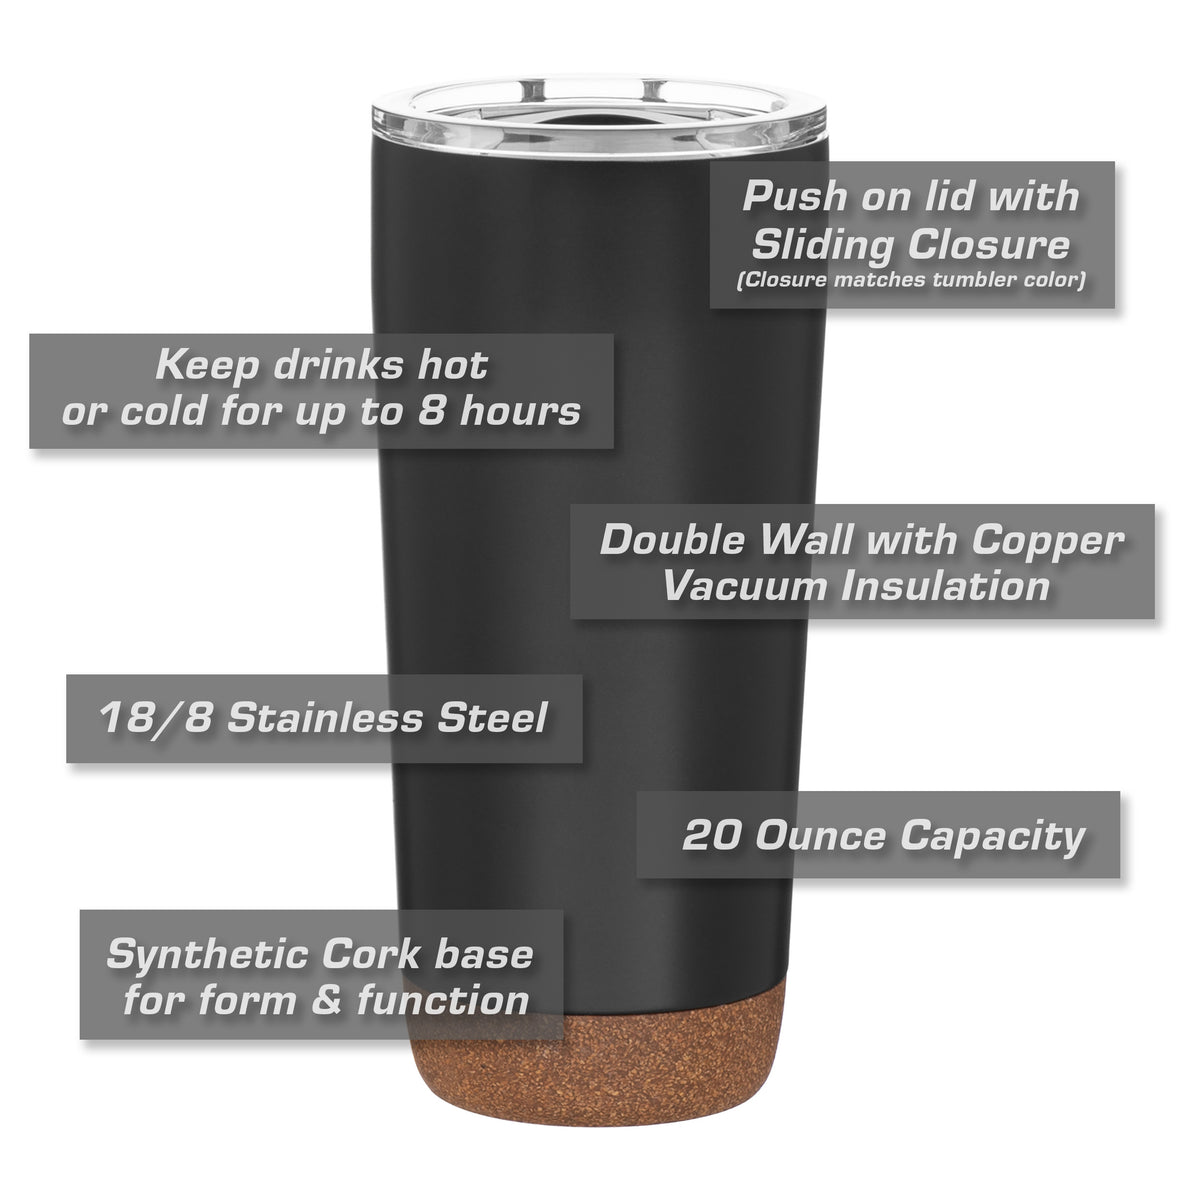 Ford Mustang Shelby GT350 1965 Insulated Stainless Steel Coffee Tumbler - 20 oz